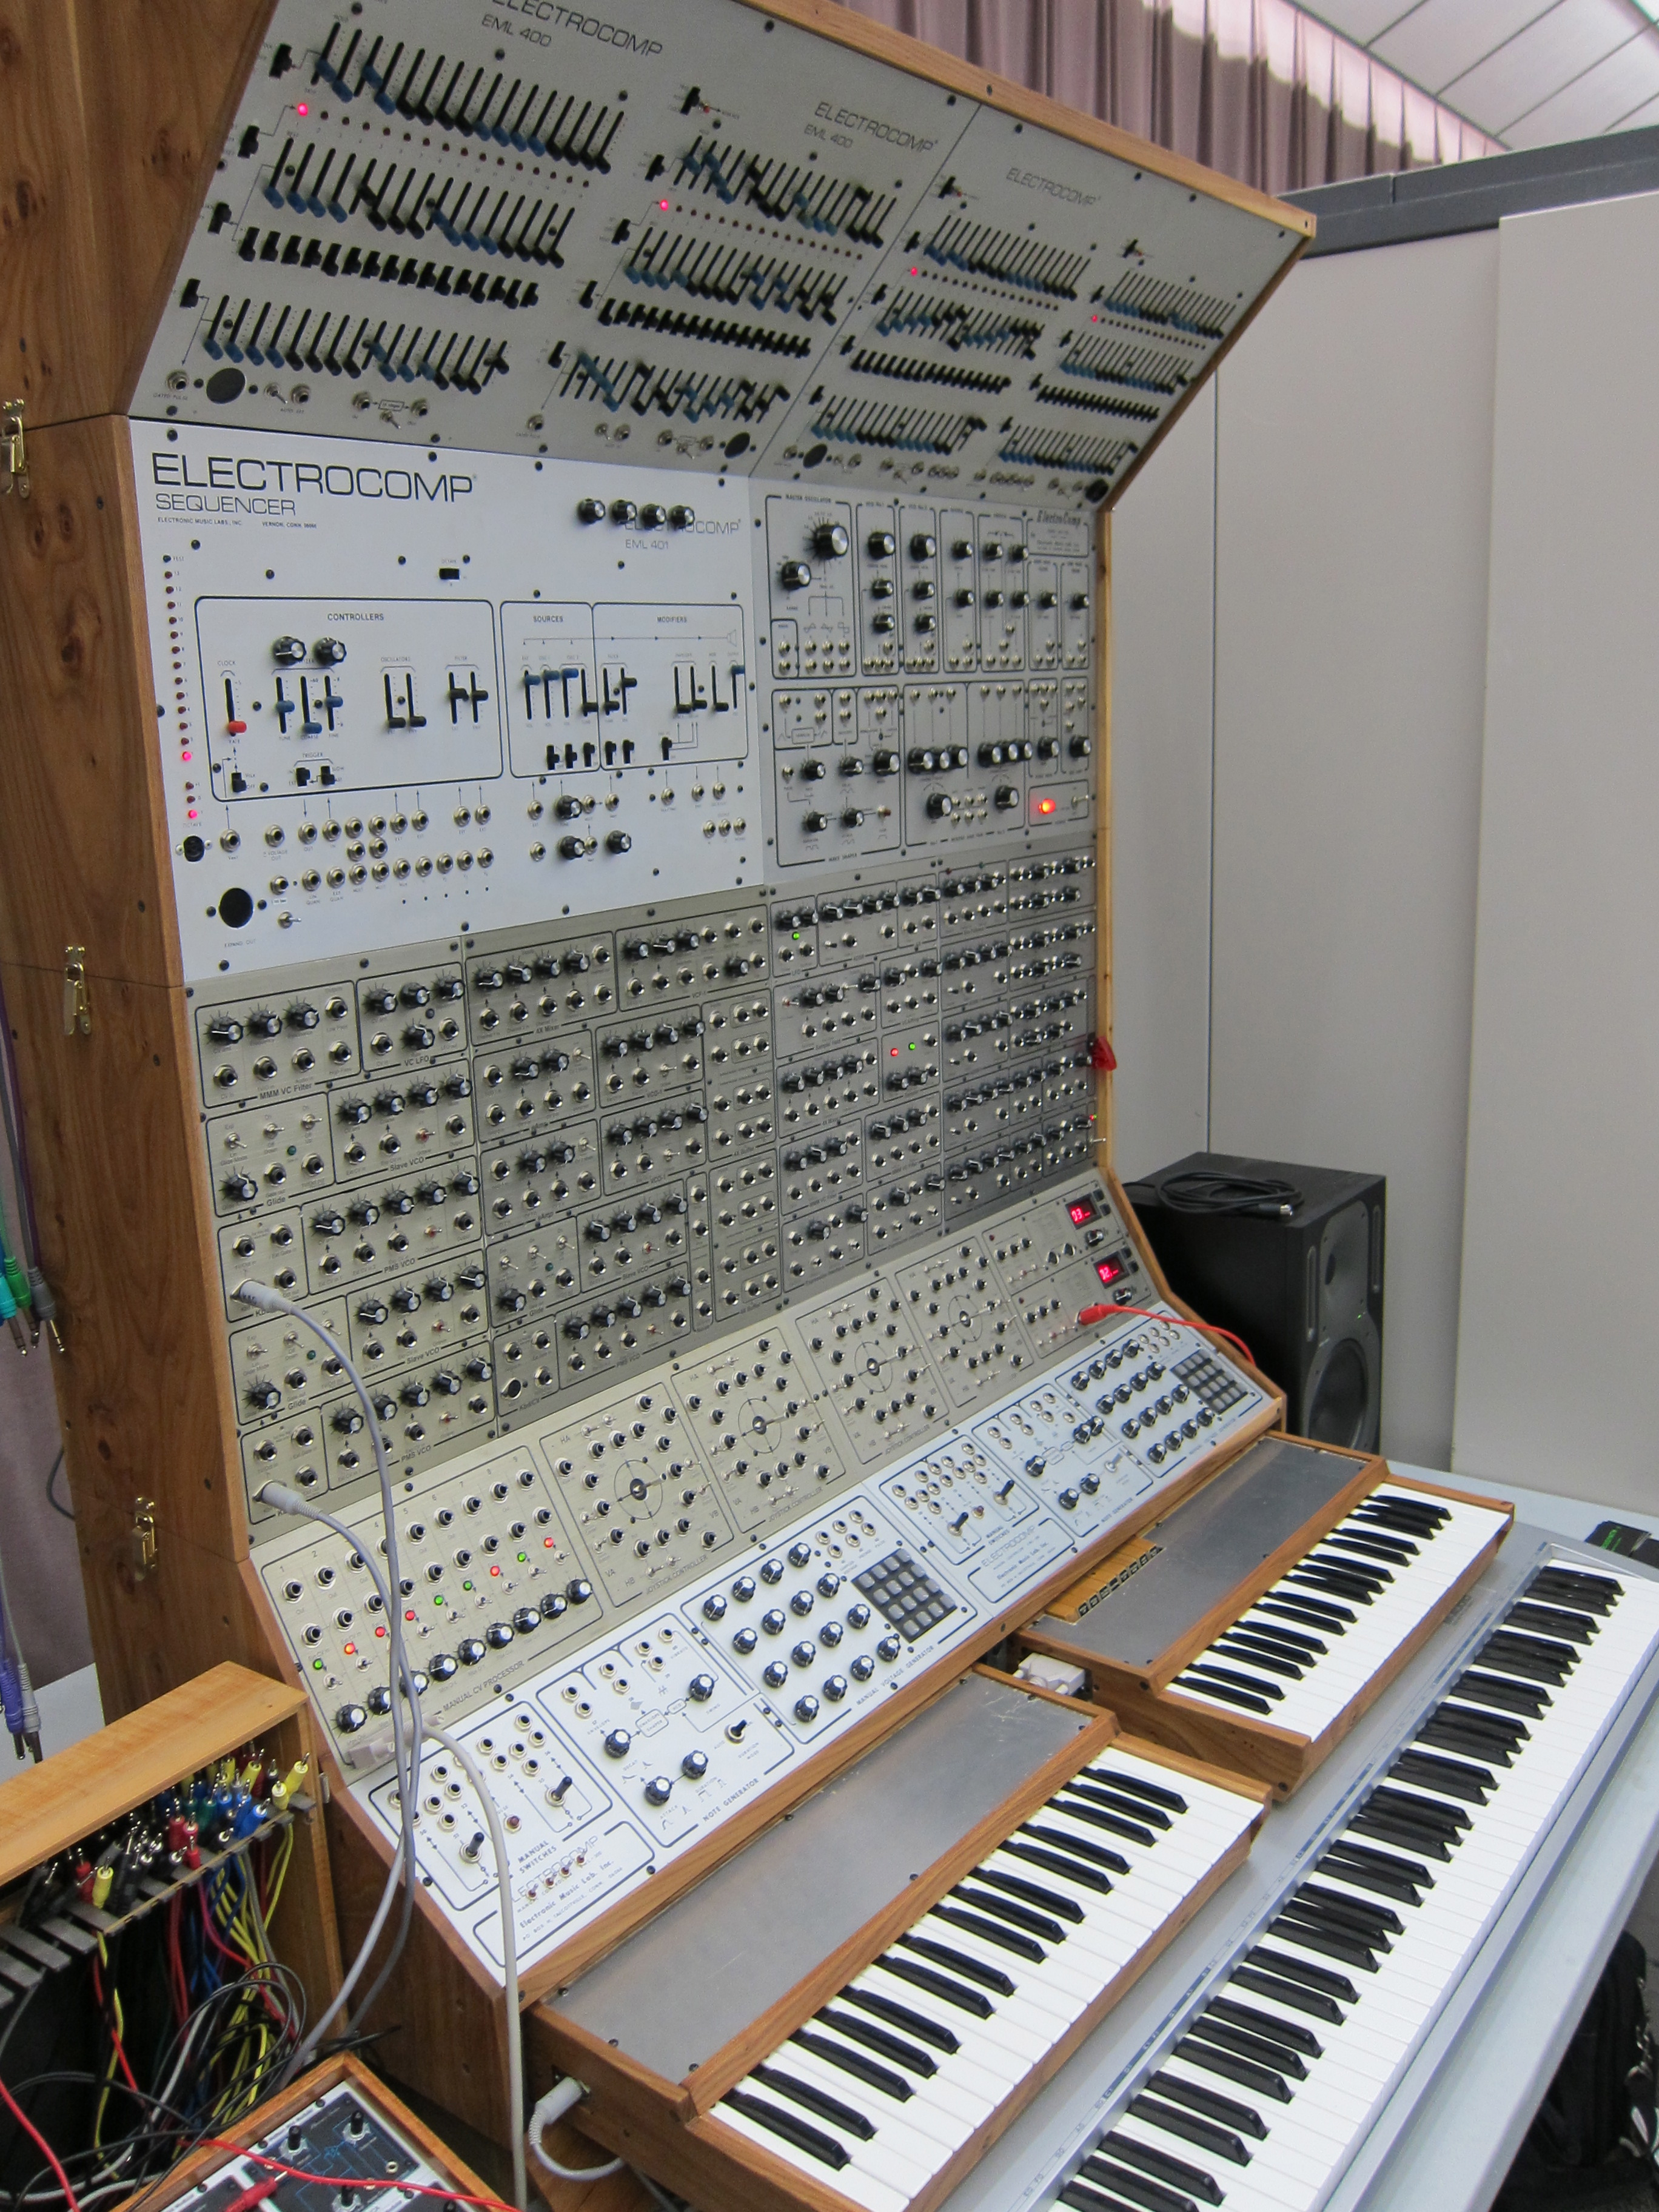 file eml electrocomp modular synth wikimedia commons. Black Bedroom Furniture Sets. Home Design Ideas